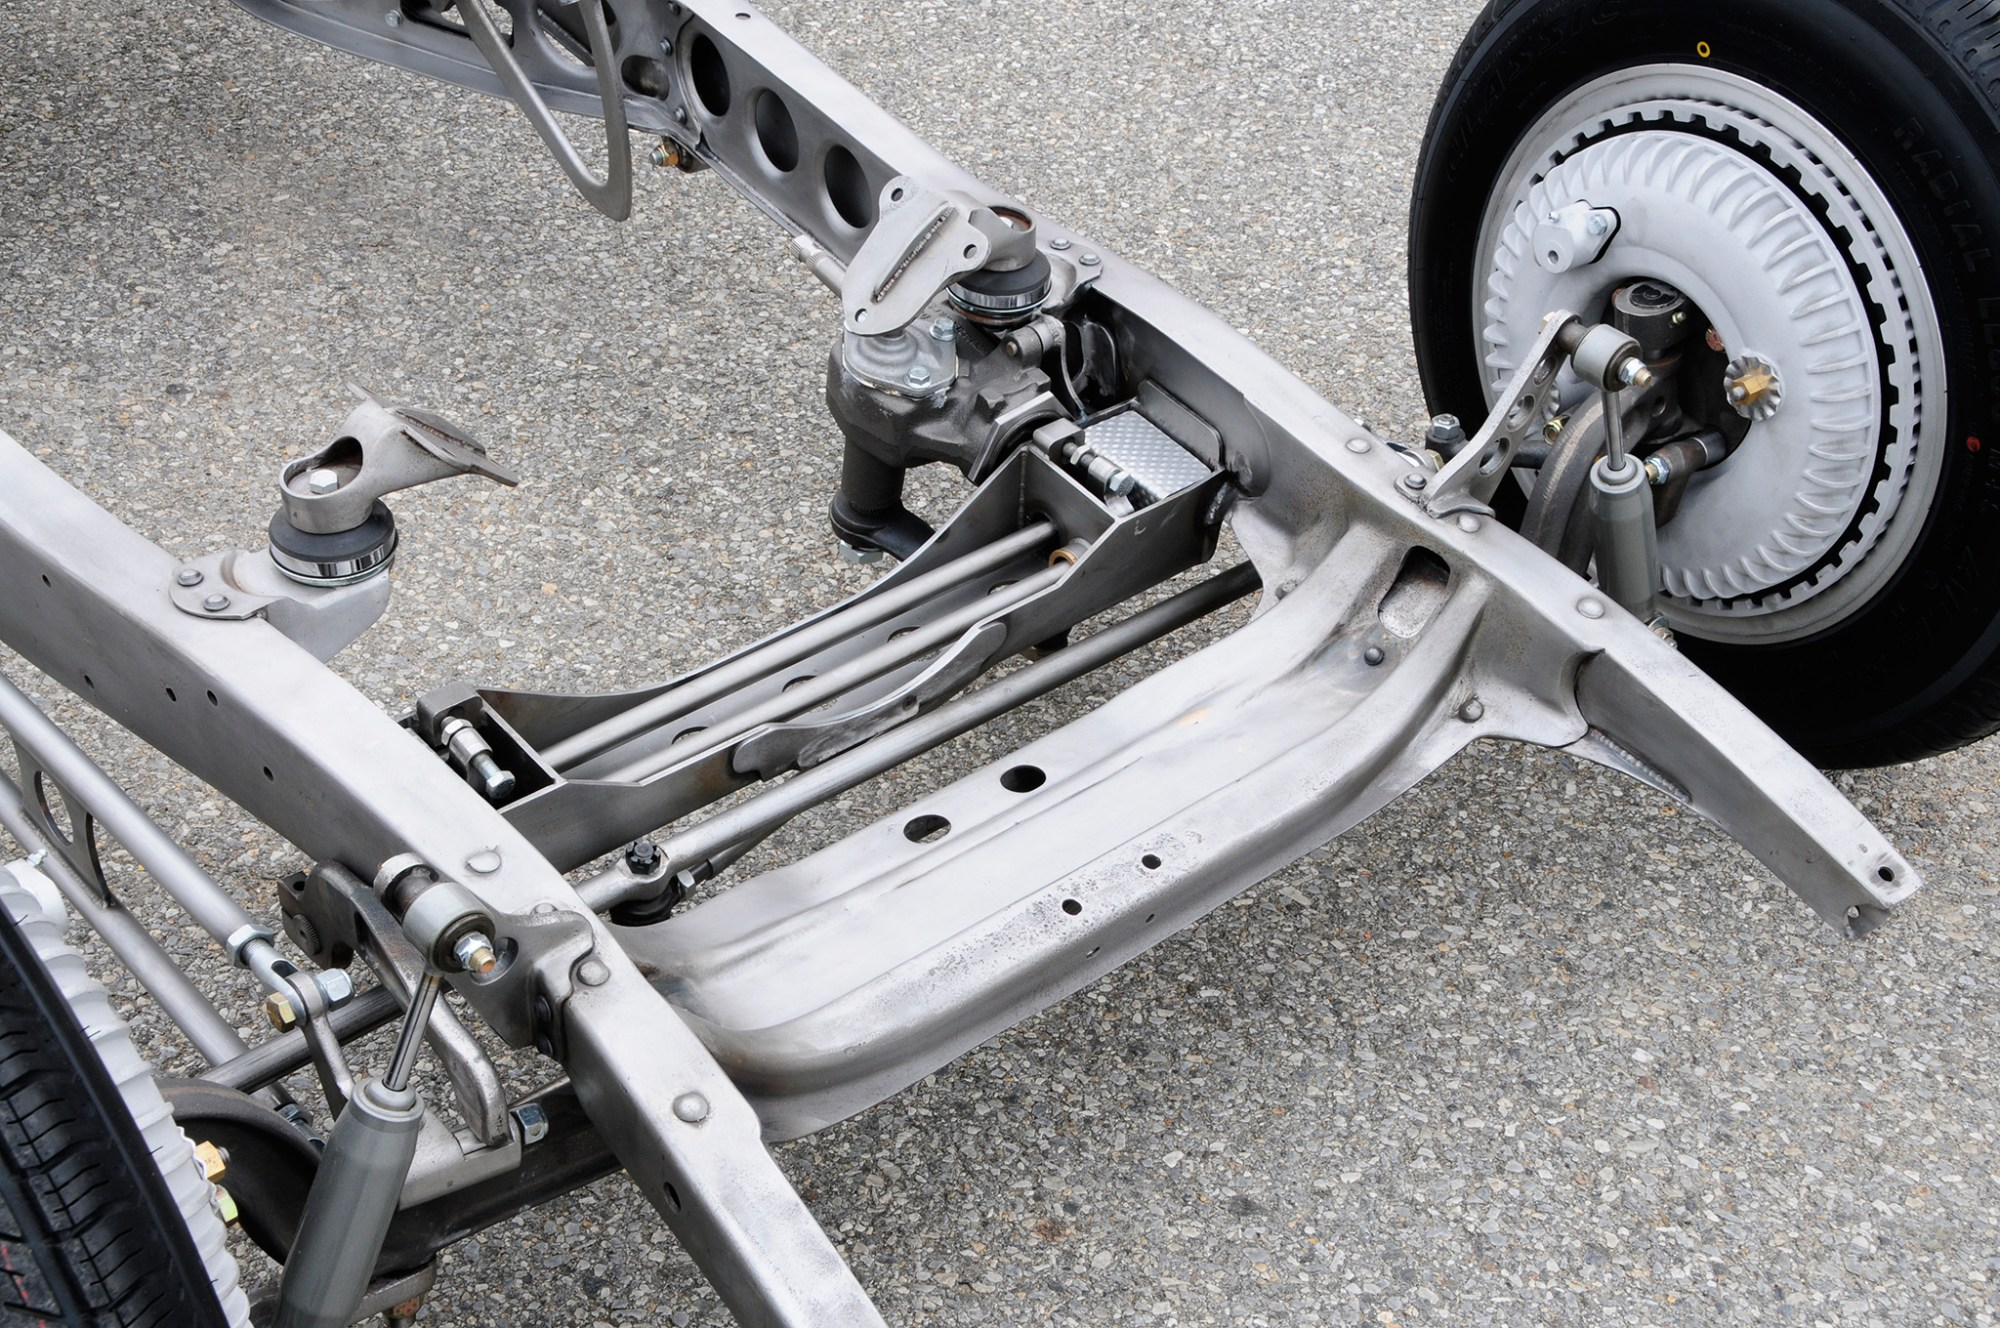 hight resolution of check out the work lesky did modifying a torsion bar suspension that started with parts from